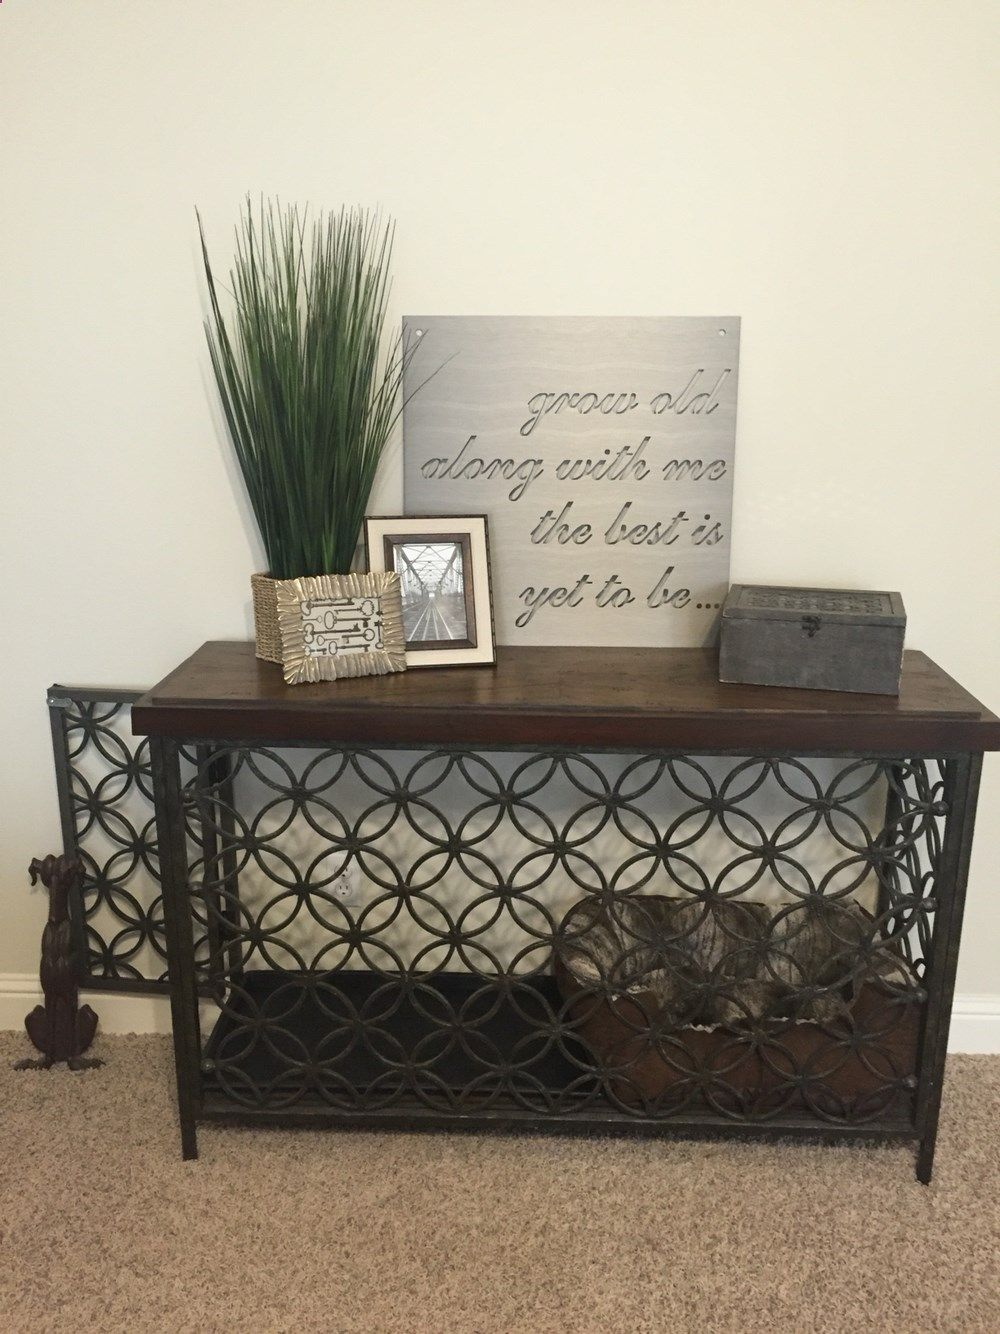 Turned a console table into a decorative dog crate Dog